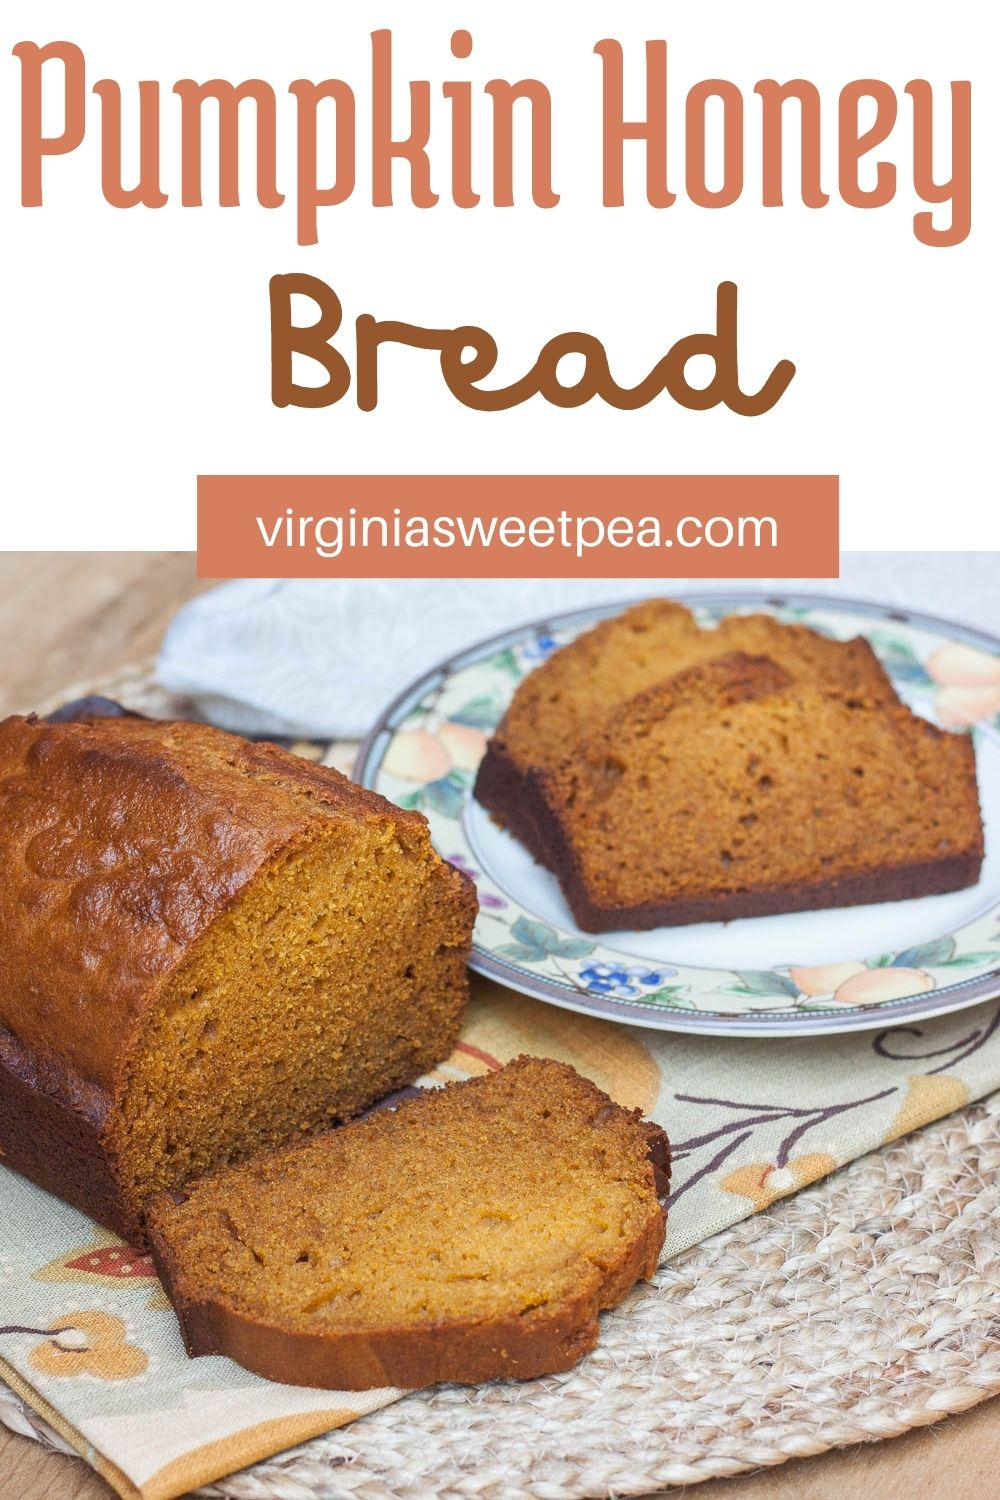 Pumpkin Honey Bread - Perfect for fall, this bread combines the taste of pumpkin, honey, and beer into one yummy fall treat. Get the printable recipe at virginiasweetpea.com. #pumpkin #pumpkinbread #fallrecipe #recipe #pumpkinrecipe via @spaula